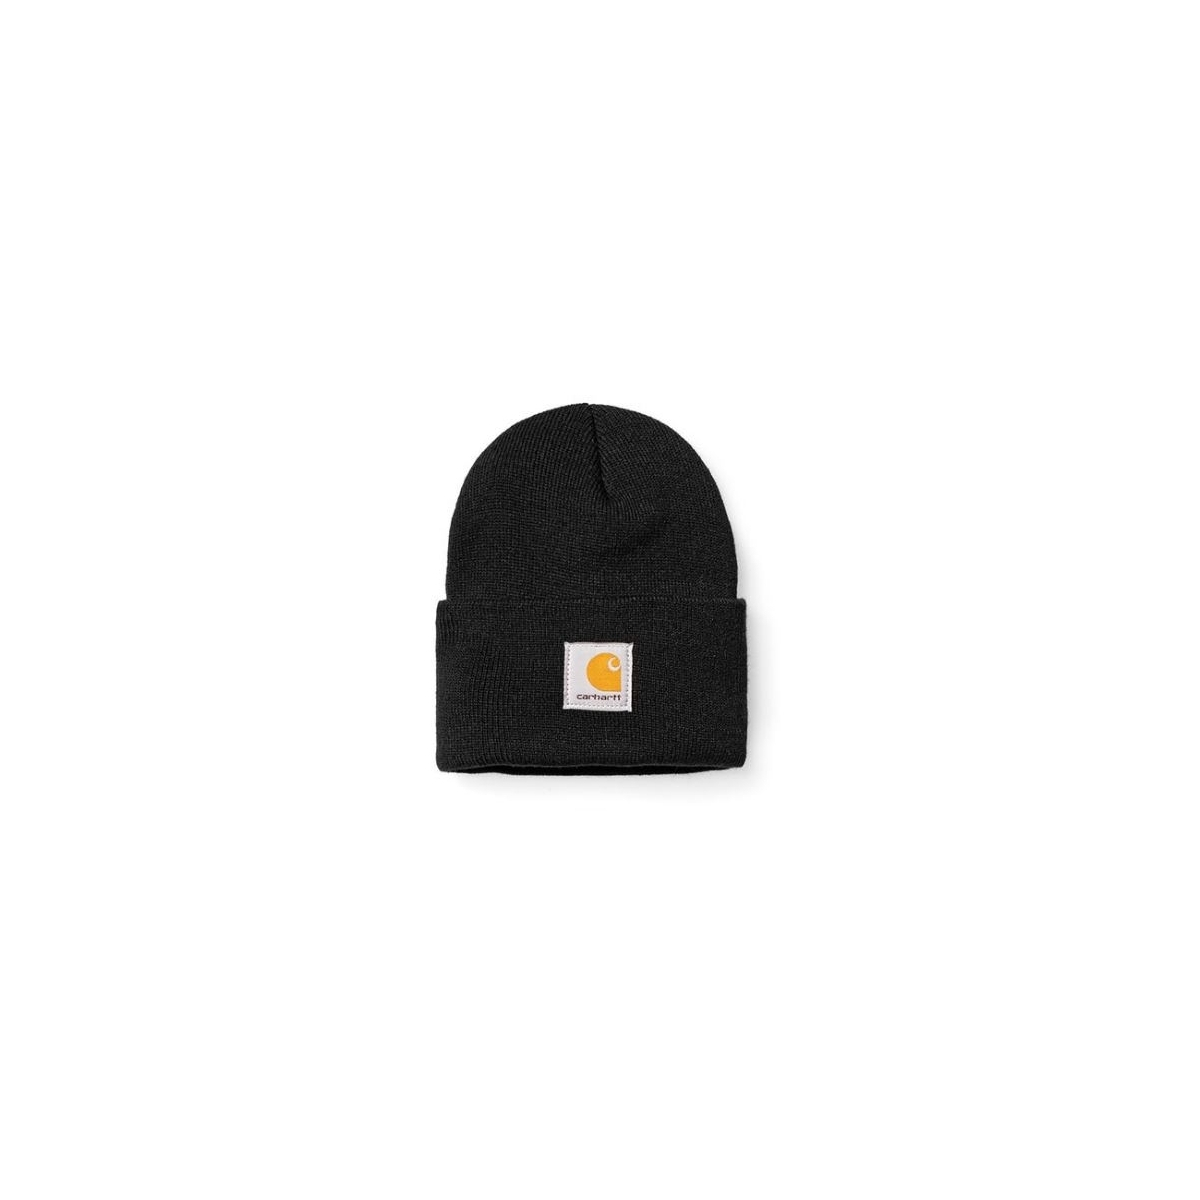 7077d862492e34 Bonnet Carhartt Acrylic Watch Hat Black | Alltricks.com